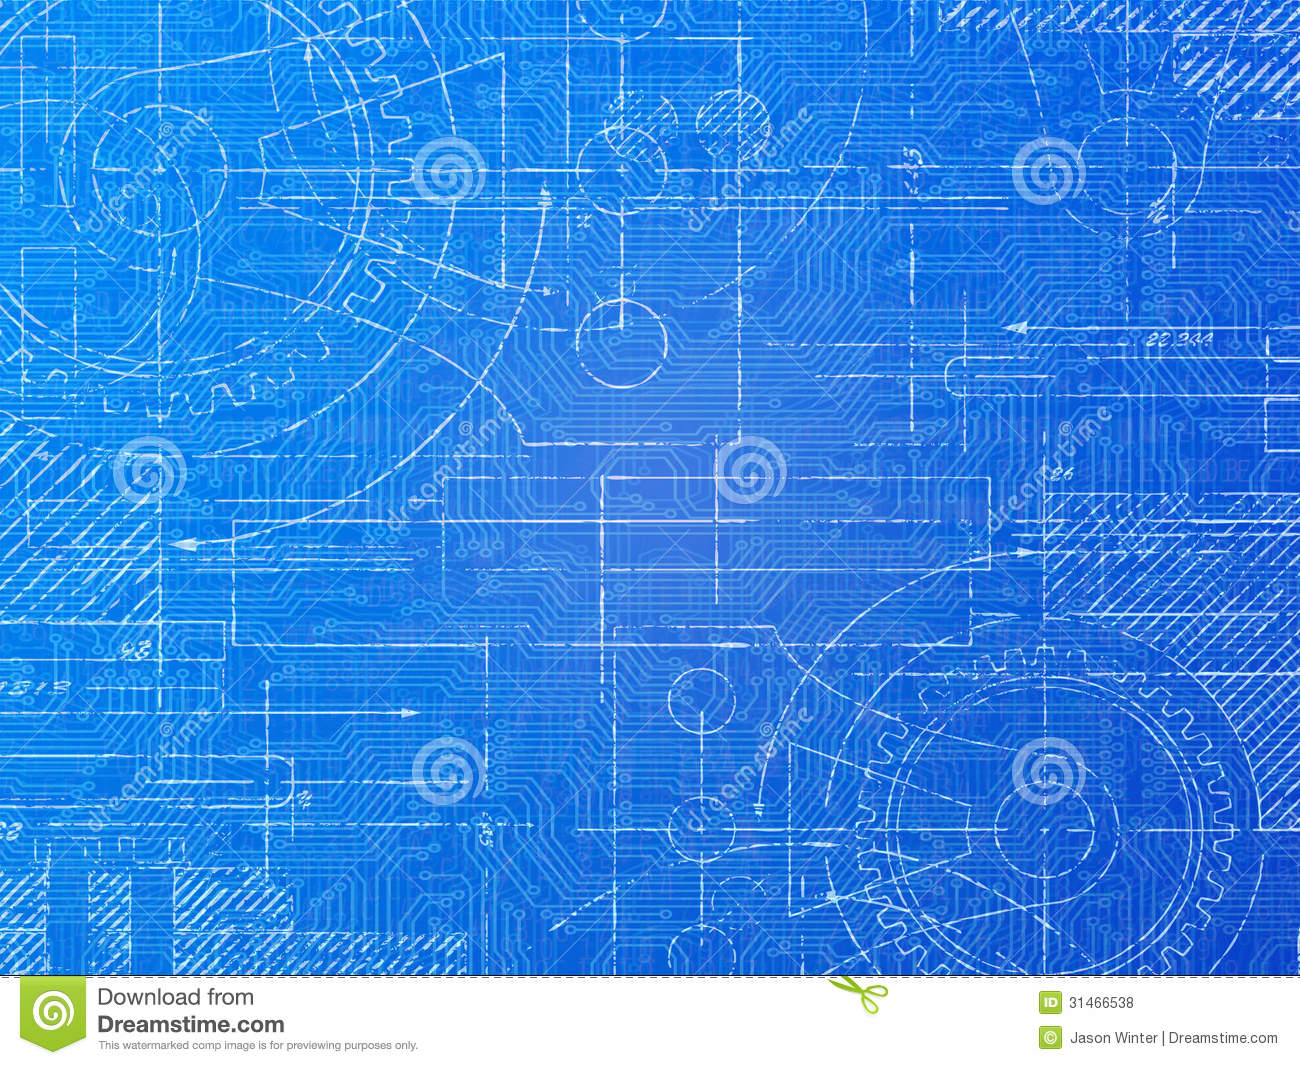 Technical blueprint stock illustration illustration of engineer technical blueprint stock illustration illustration of engineer 31466538 malvernweather Gallery